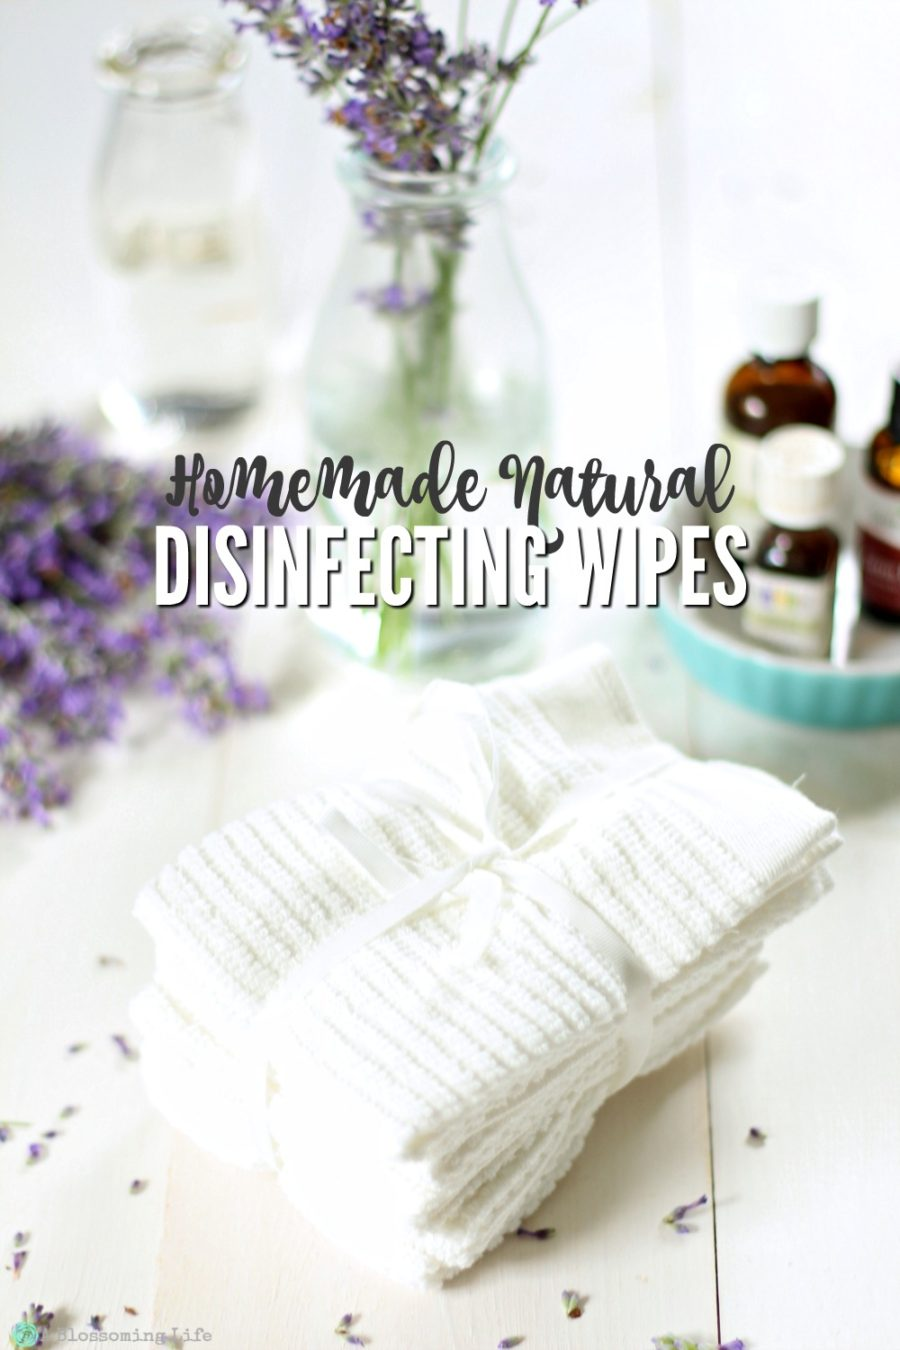 Homemade Natural Disinfecting Wipes